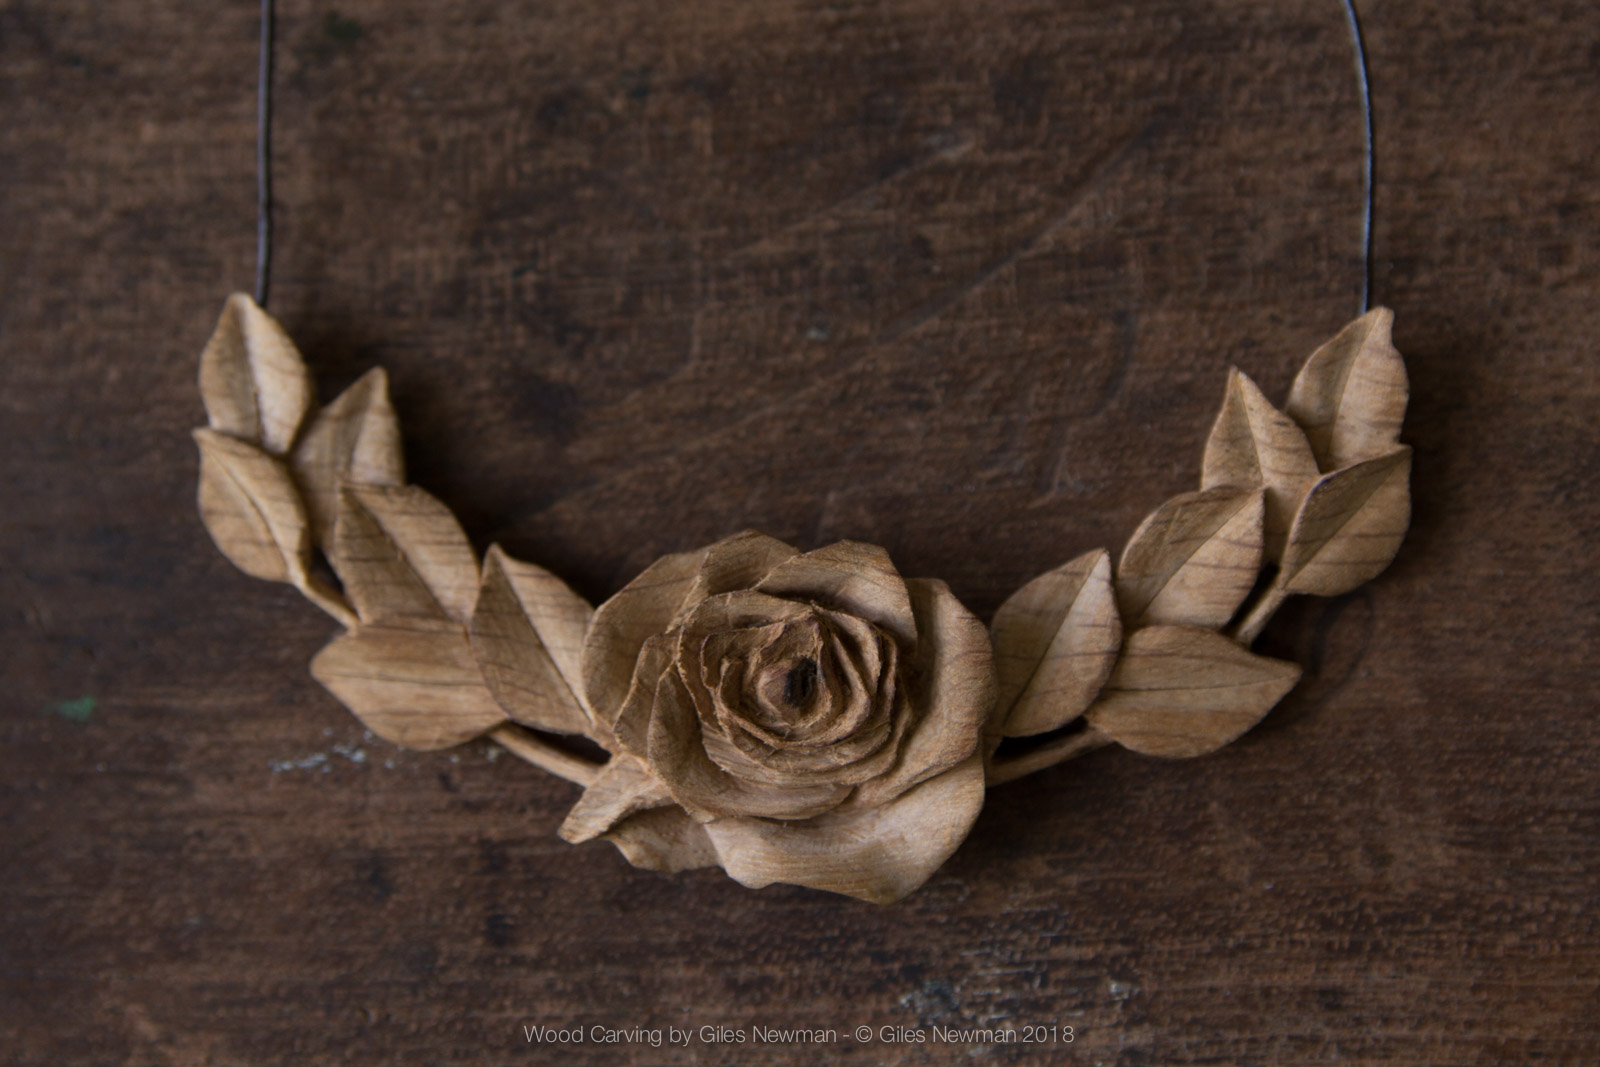 Wood-Carving-by-Giles-Newman-177.jpg